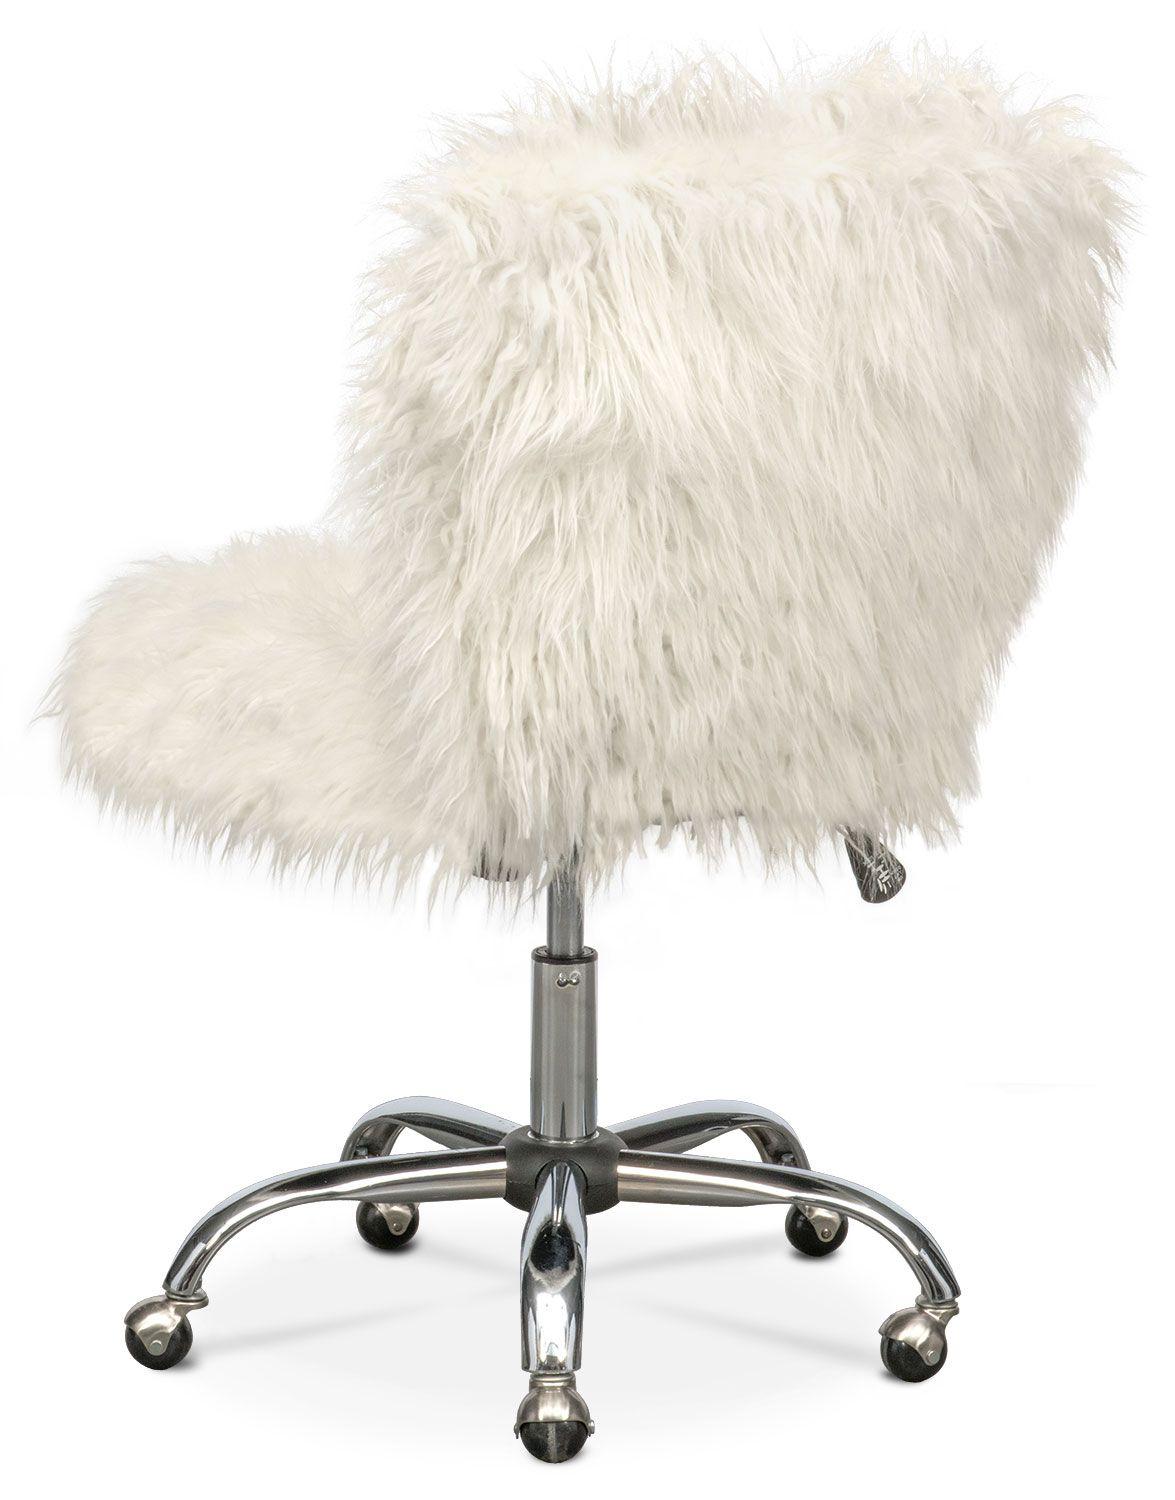 Oh So Shaggy Function Meets Fashion With The Frenzy Office Chair Featuring Gorgeous Shaggy Faux Fur With A Super Desk Chair Office Chair White Office Chair